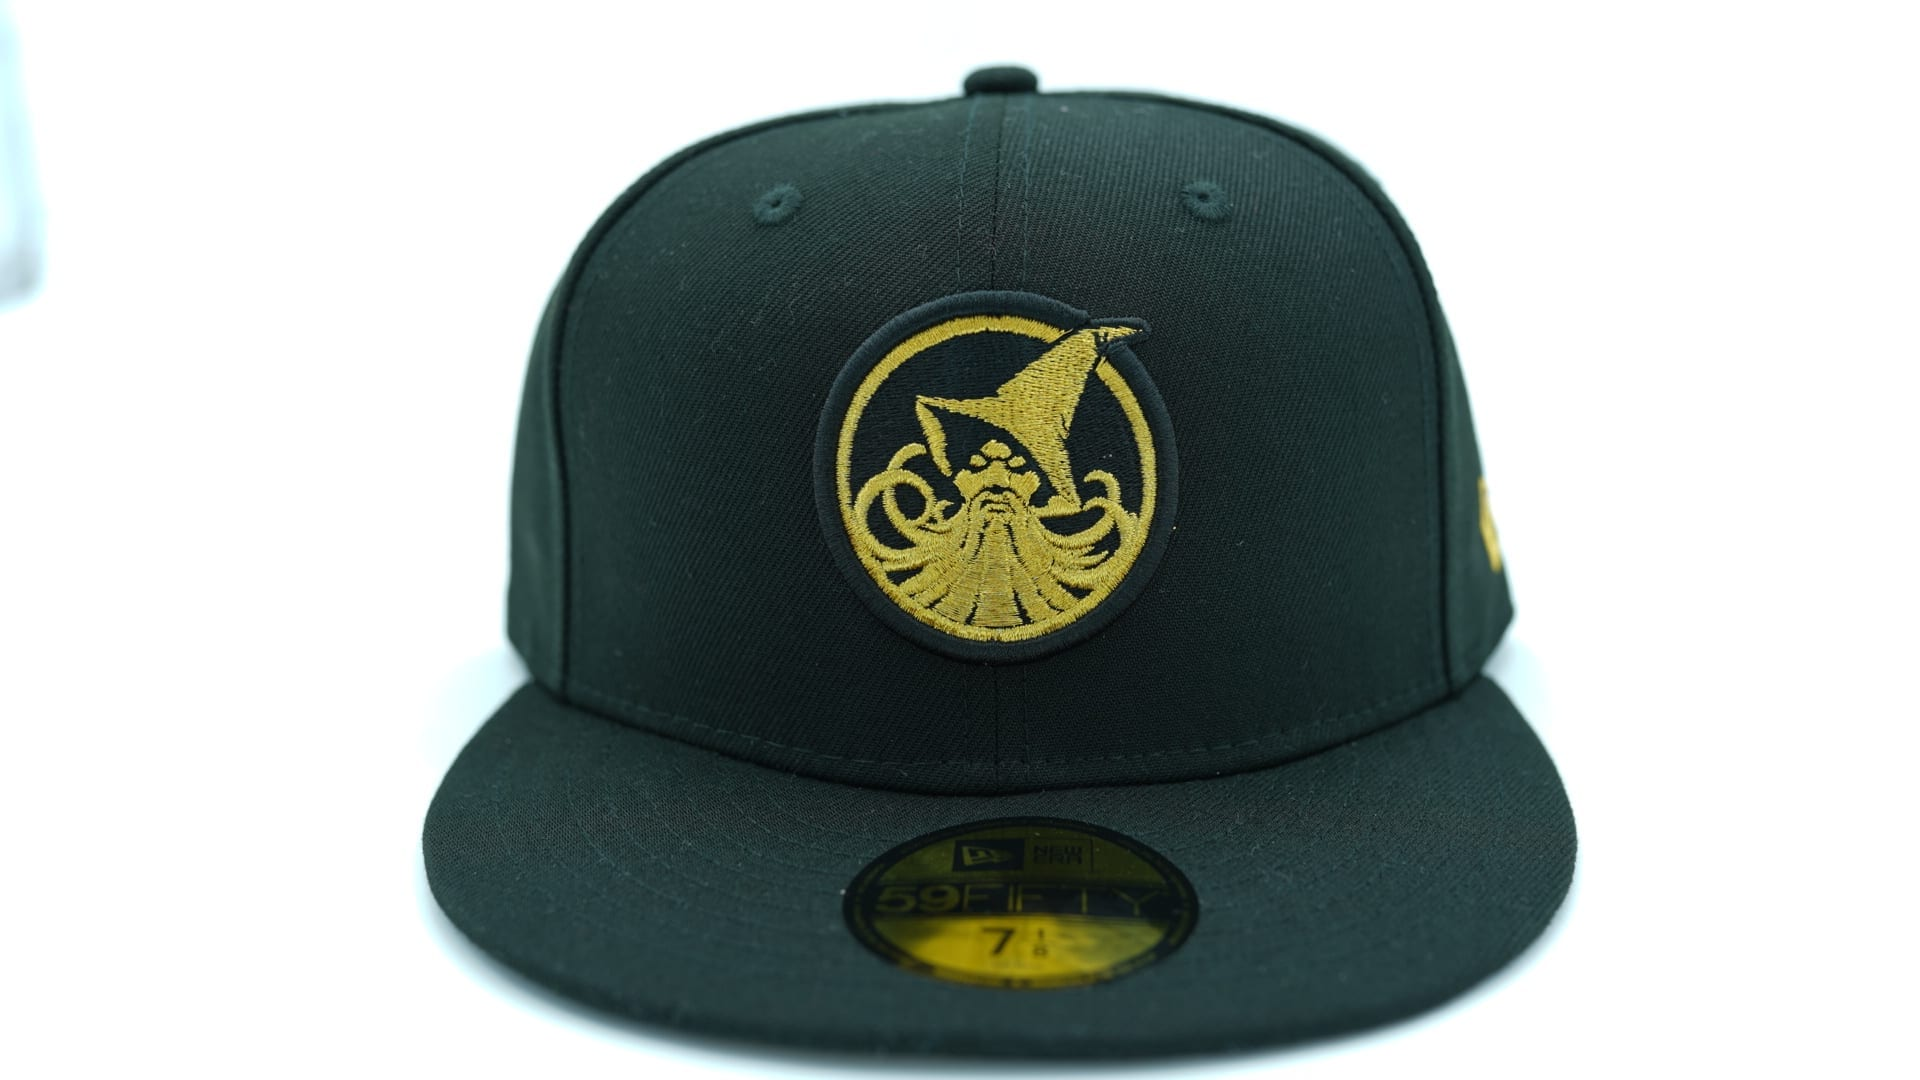 59a4cfa2b6606 OVO x NEW ERA「Omega」59Fifty Fitted Baseball Cap